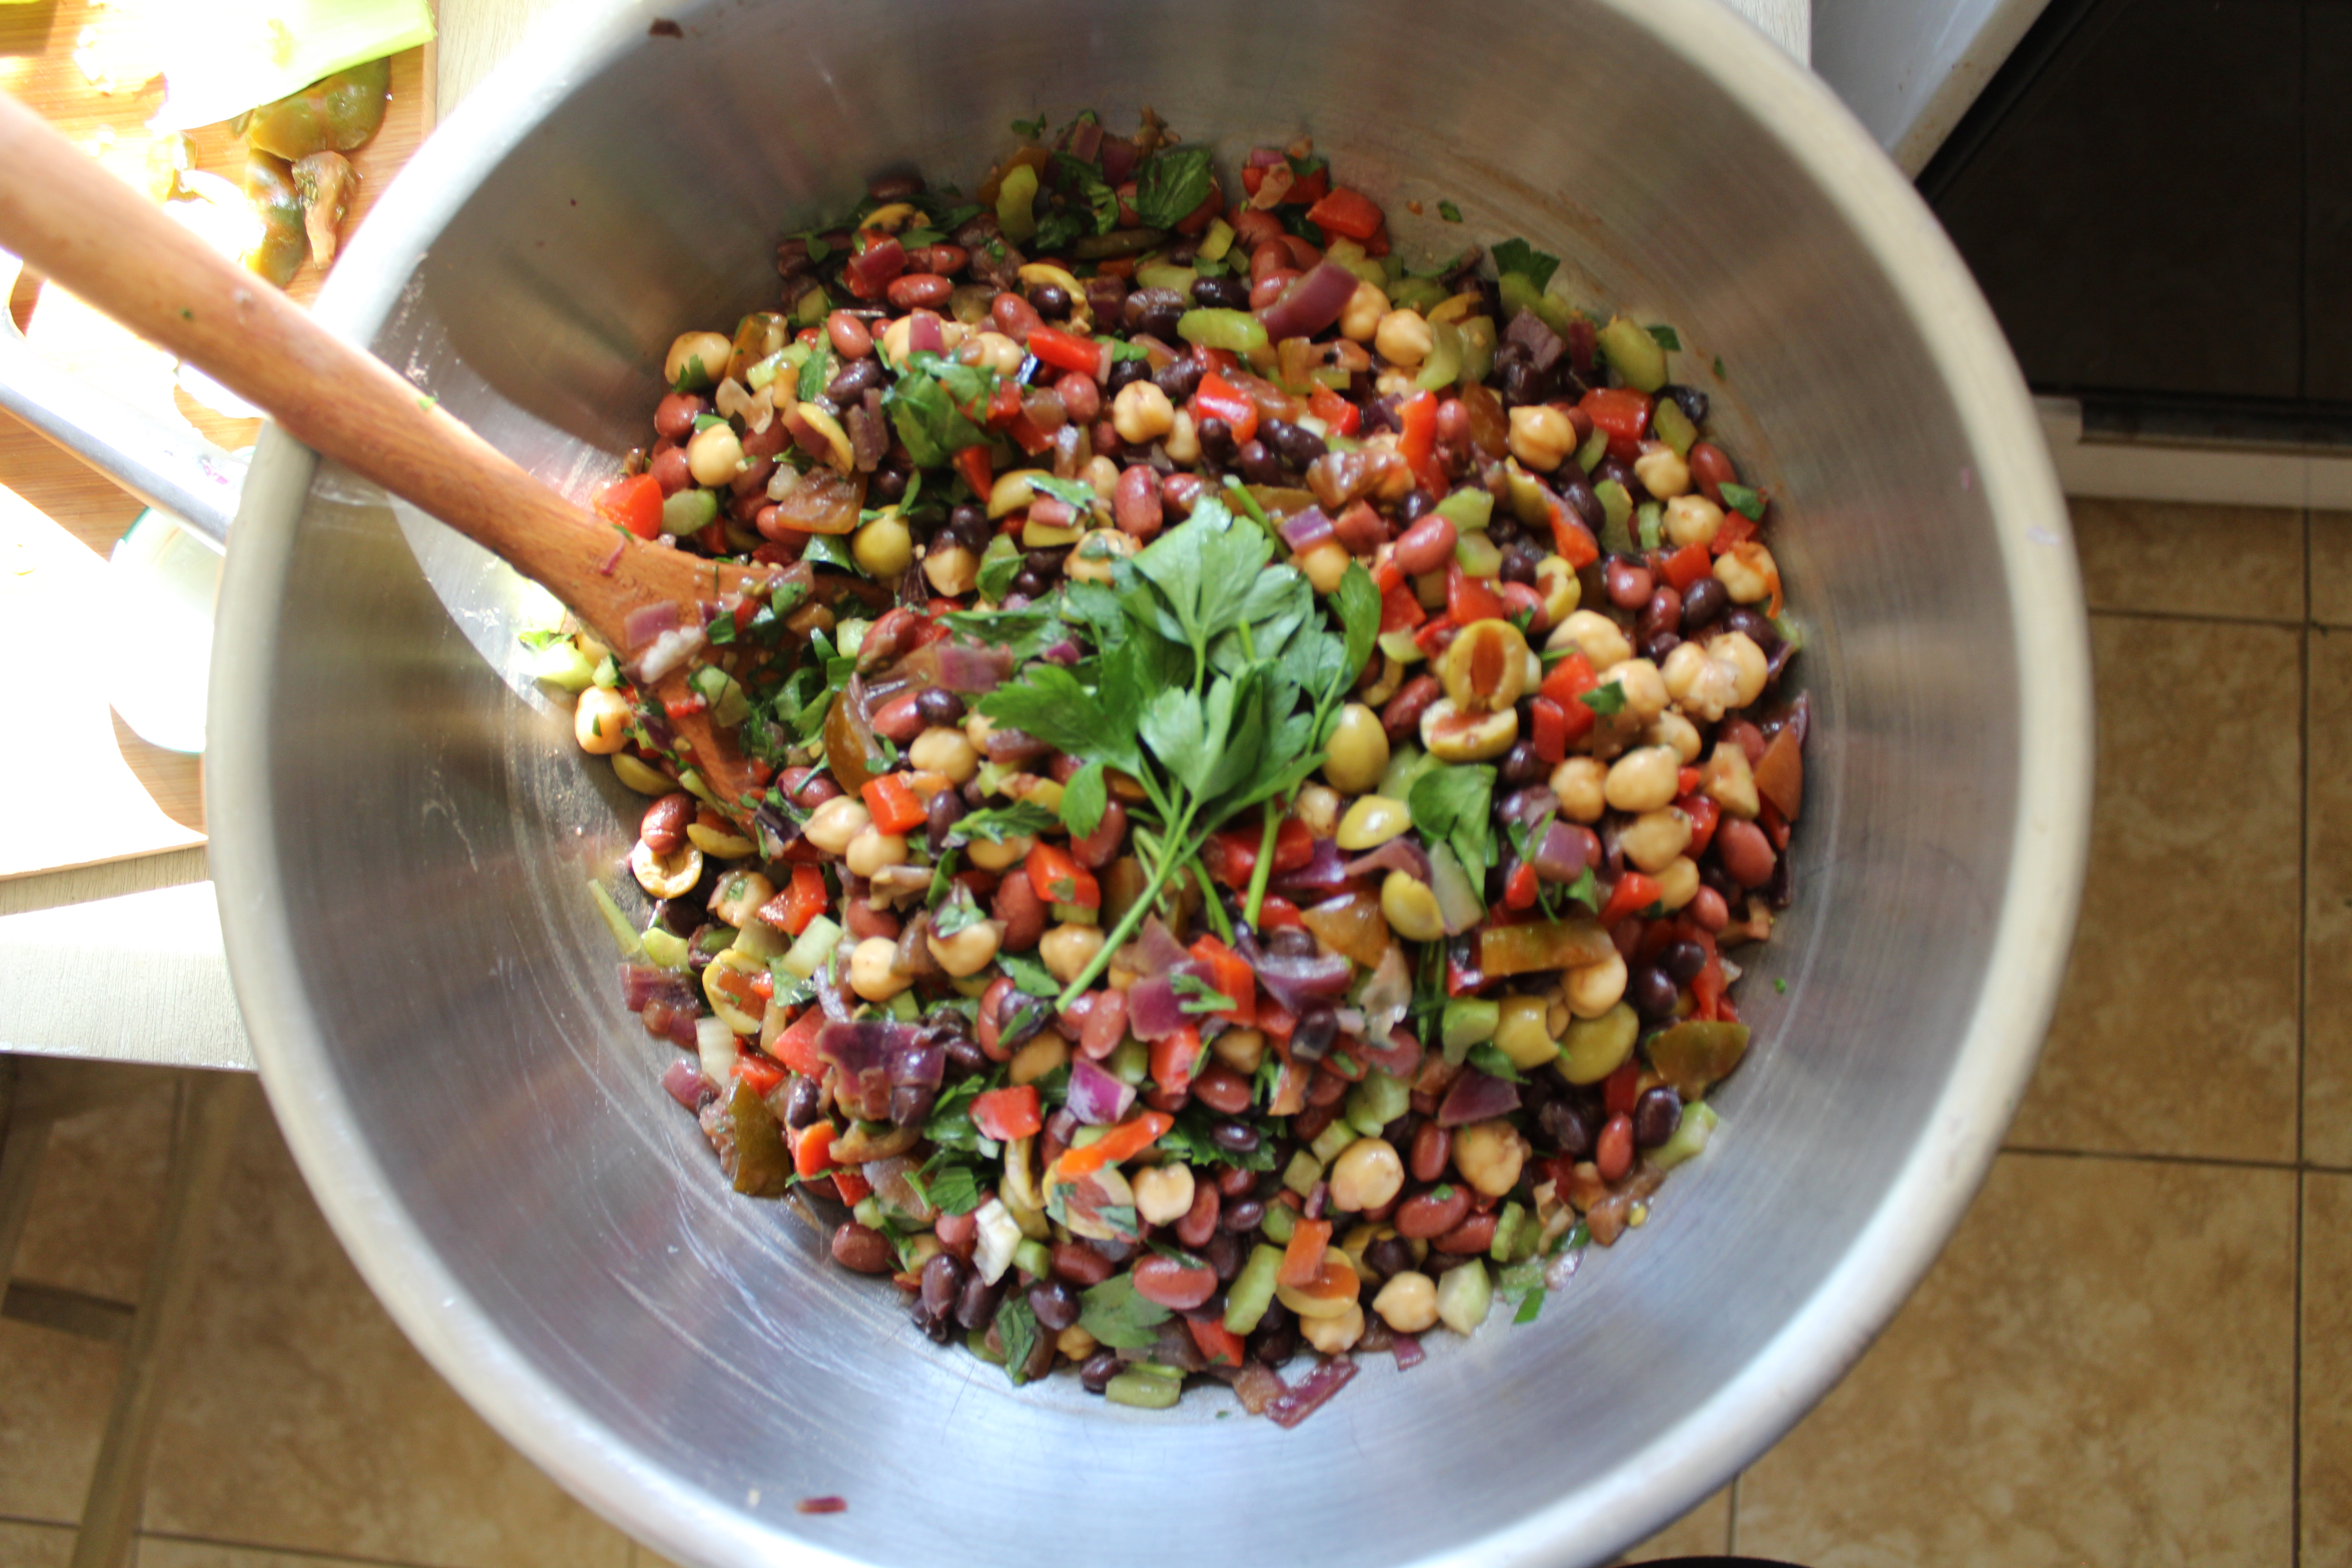 [Looking directly down into a large bowl of colorful mixed beans and chopped vegetables.]